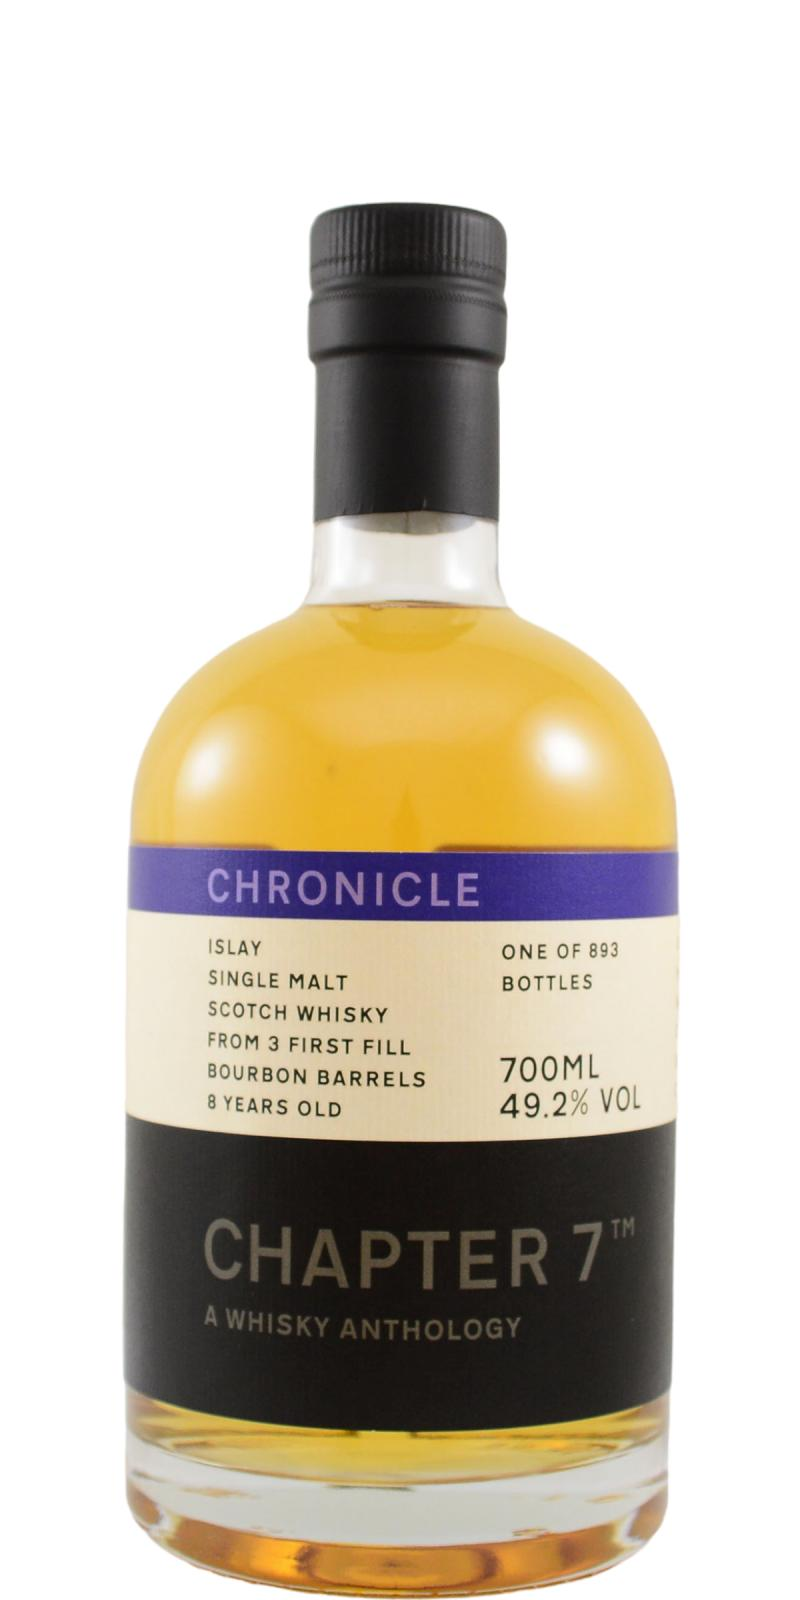 Islay Single Malt Scotch Whisky 08-year-old Ch7